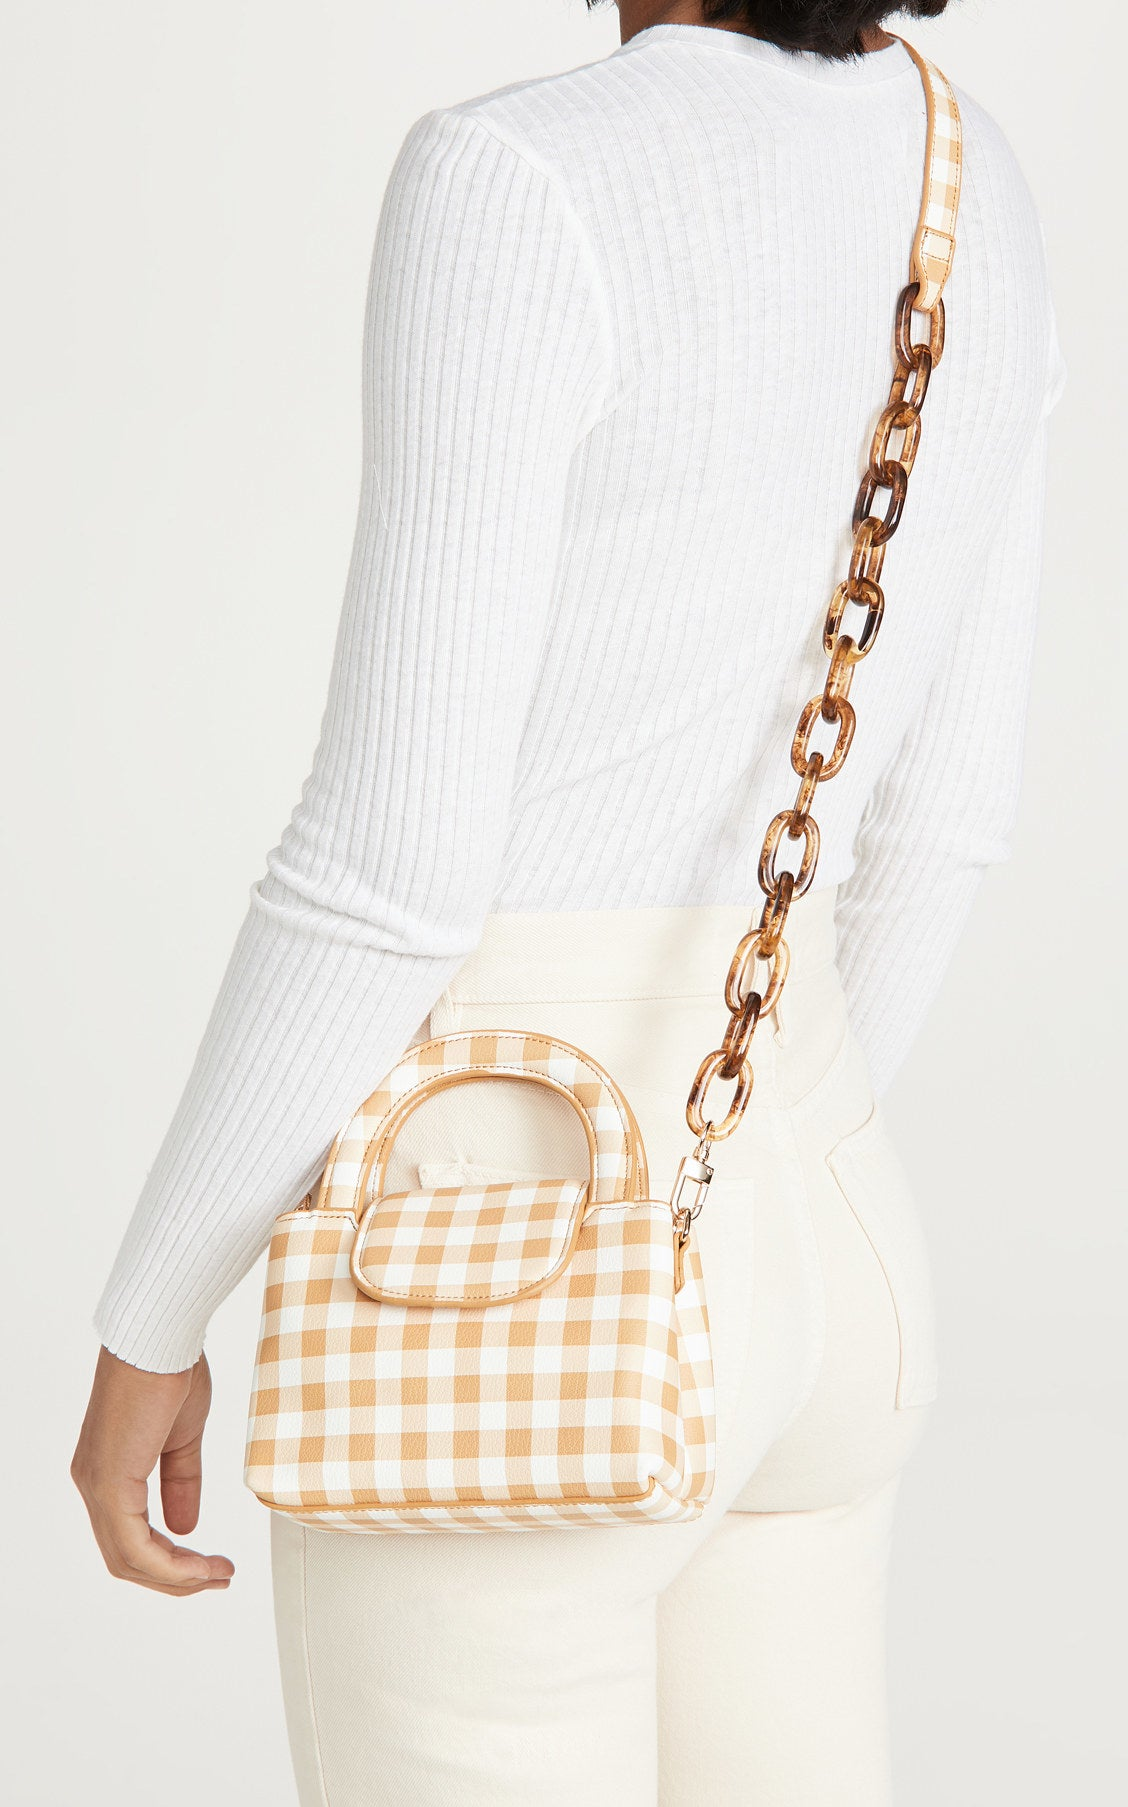 A model carrying the white and yellow top-handle bag with a tortoiseshell effect chain strap as a crossbody with white jeans